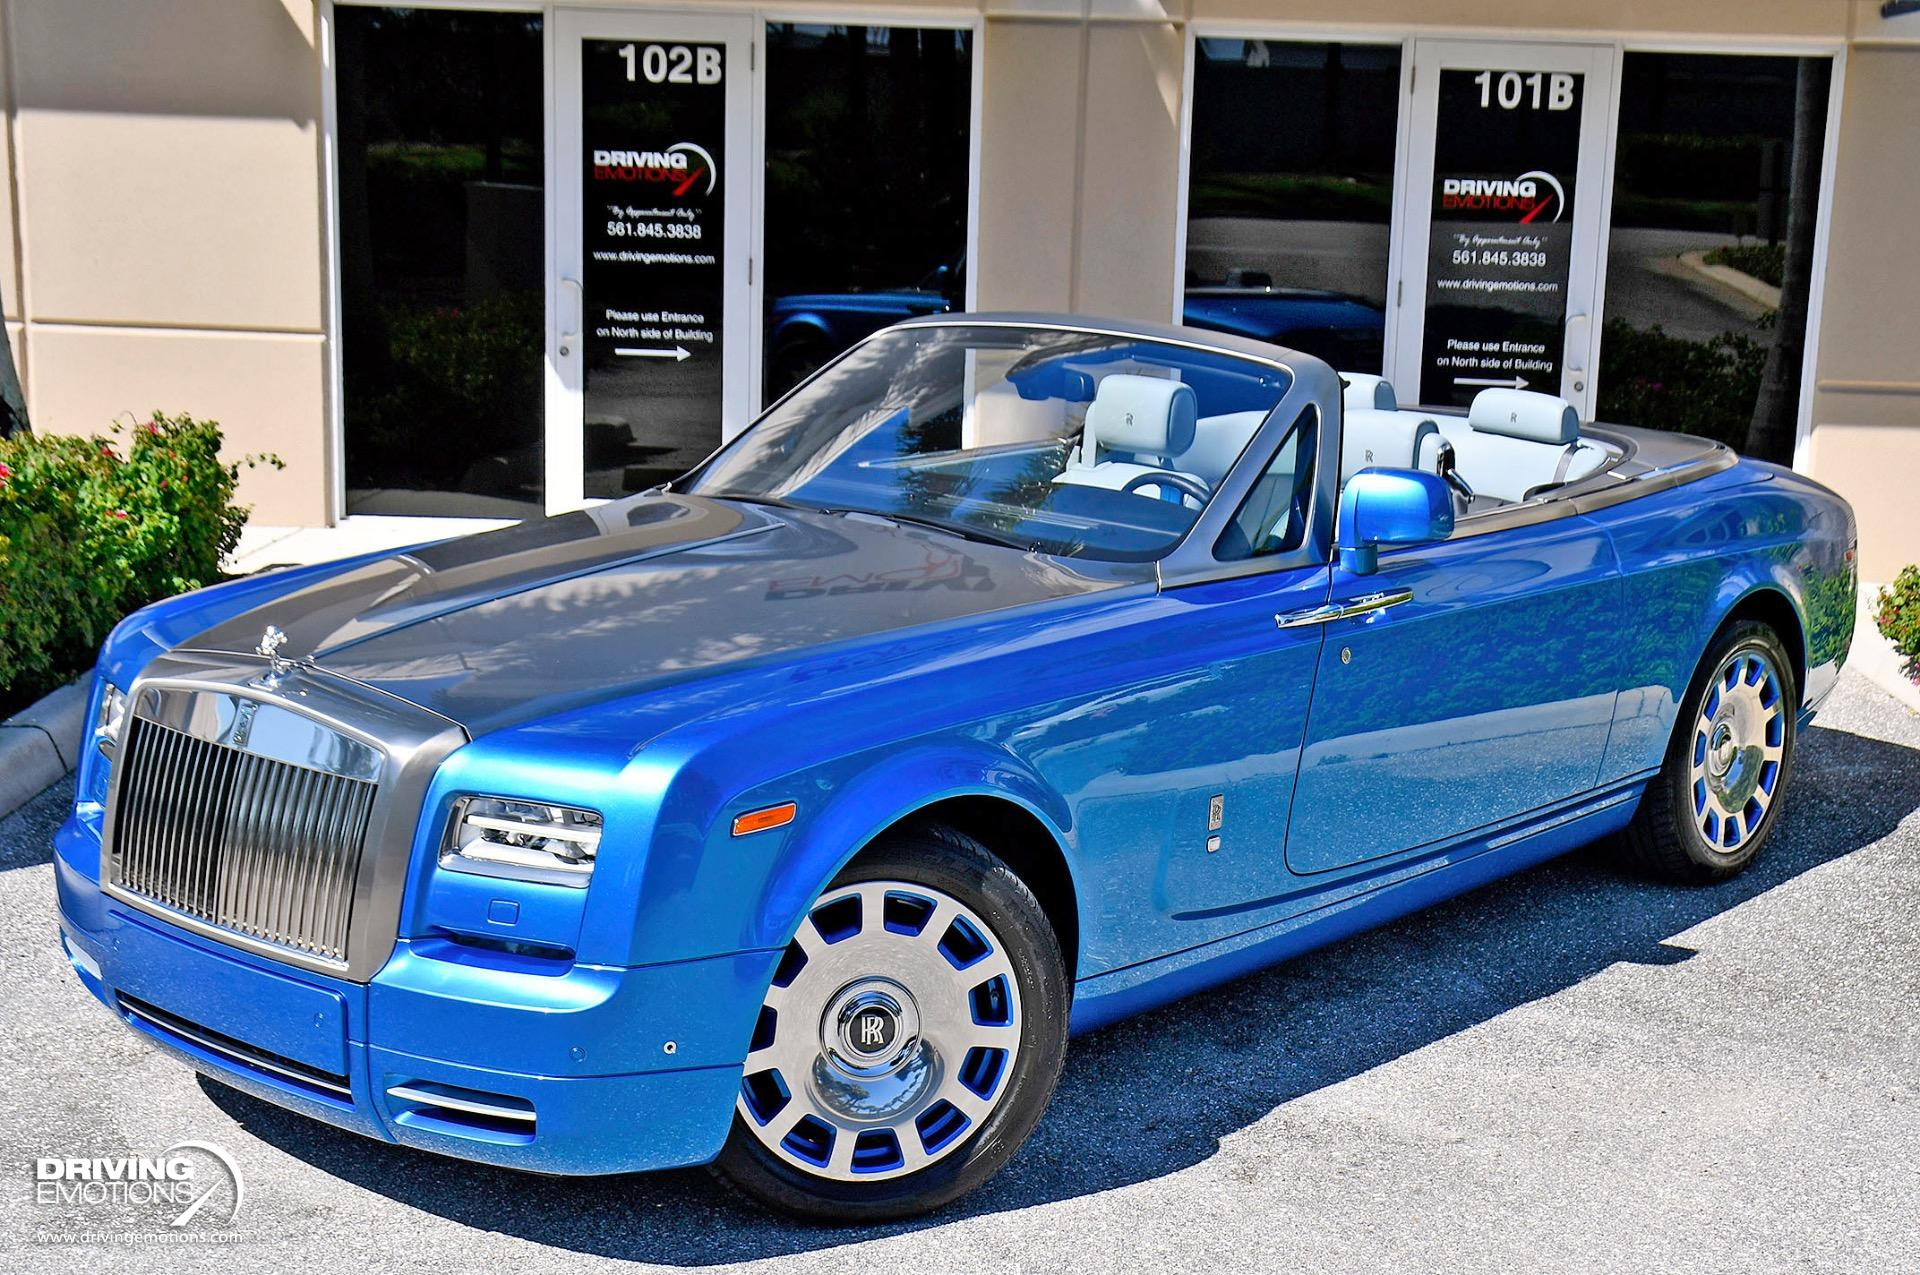 Used 2015 Rolls-Royce Phantom Drophead Coupe Waterspeed Collection $593k MSRP! | Lake Park, FL